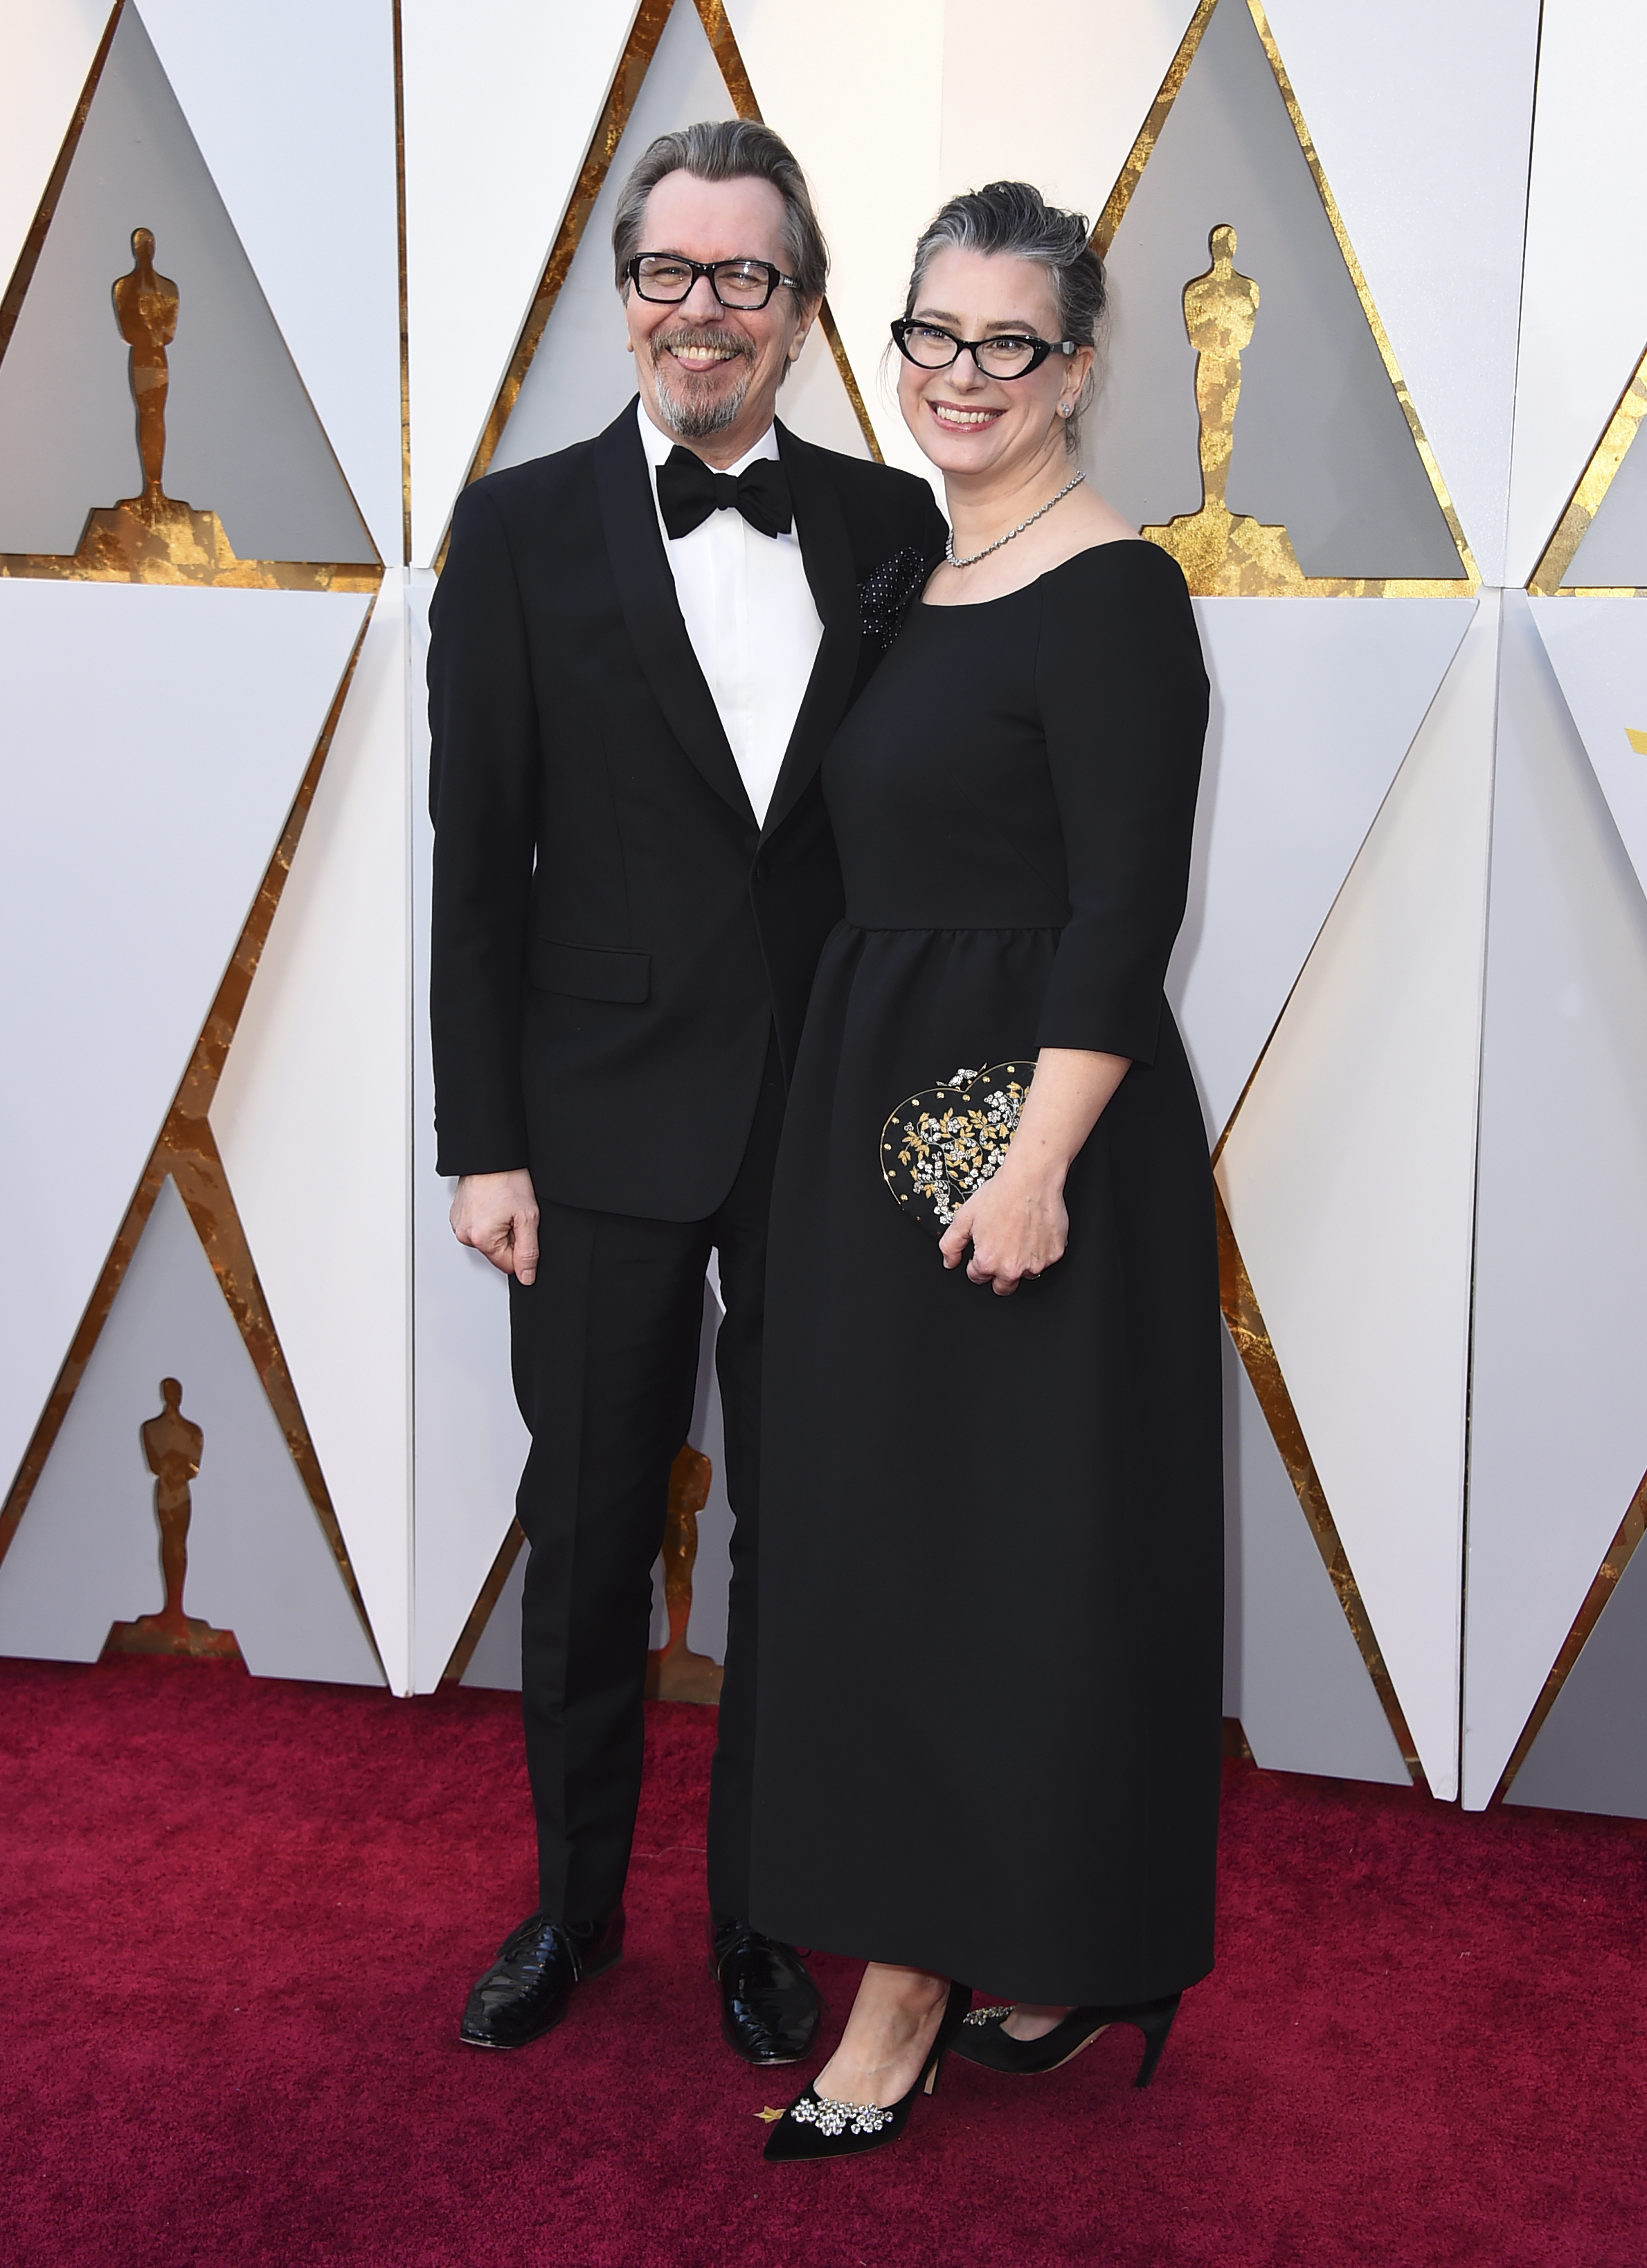 "<div class=""meta image-caption""><div class=""origin-logo origin-image none""><span>none</span></div><span class=""caption-text"">Gary Oldman (nominated for Best Actor for ''Darkest Hour'') and Gisele Schmidt arrive at the Oscars. (Jordan Strauss/Invision/AP)</span></div>"